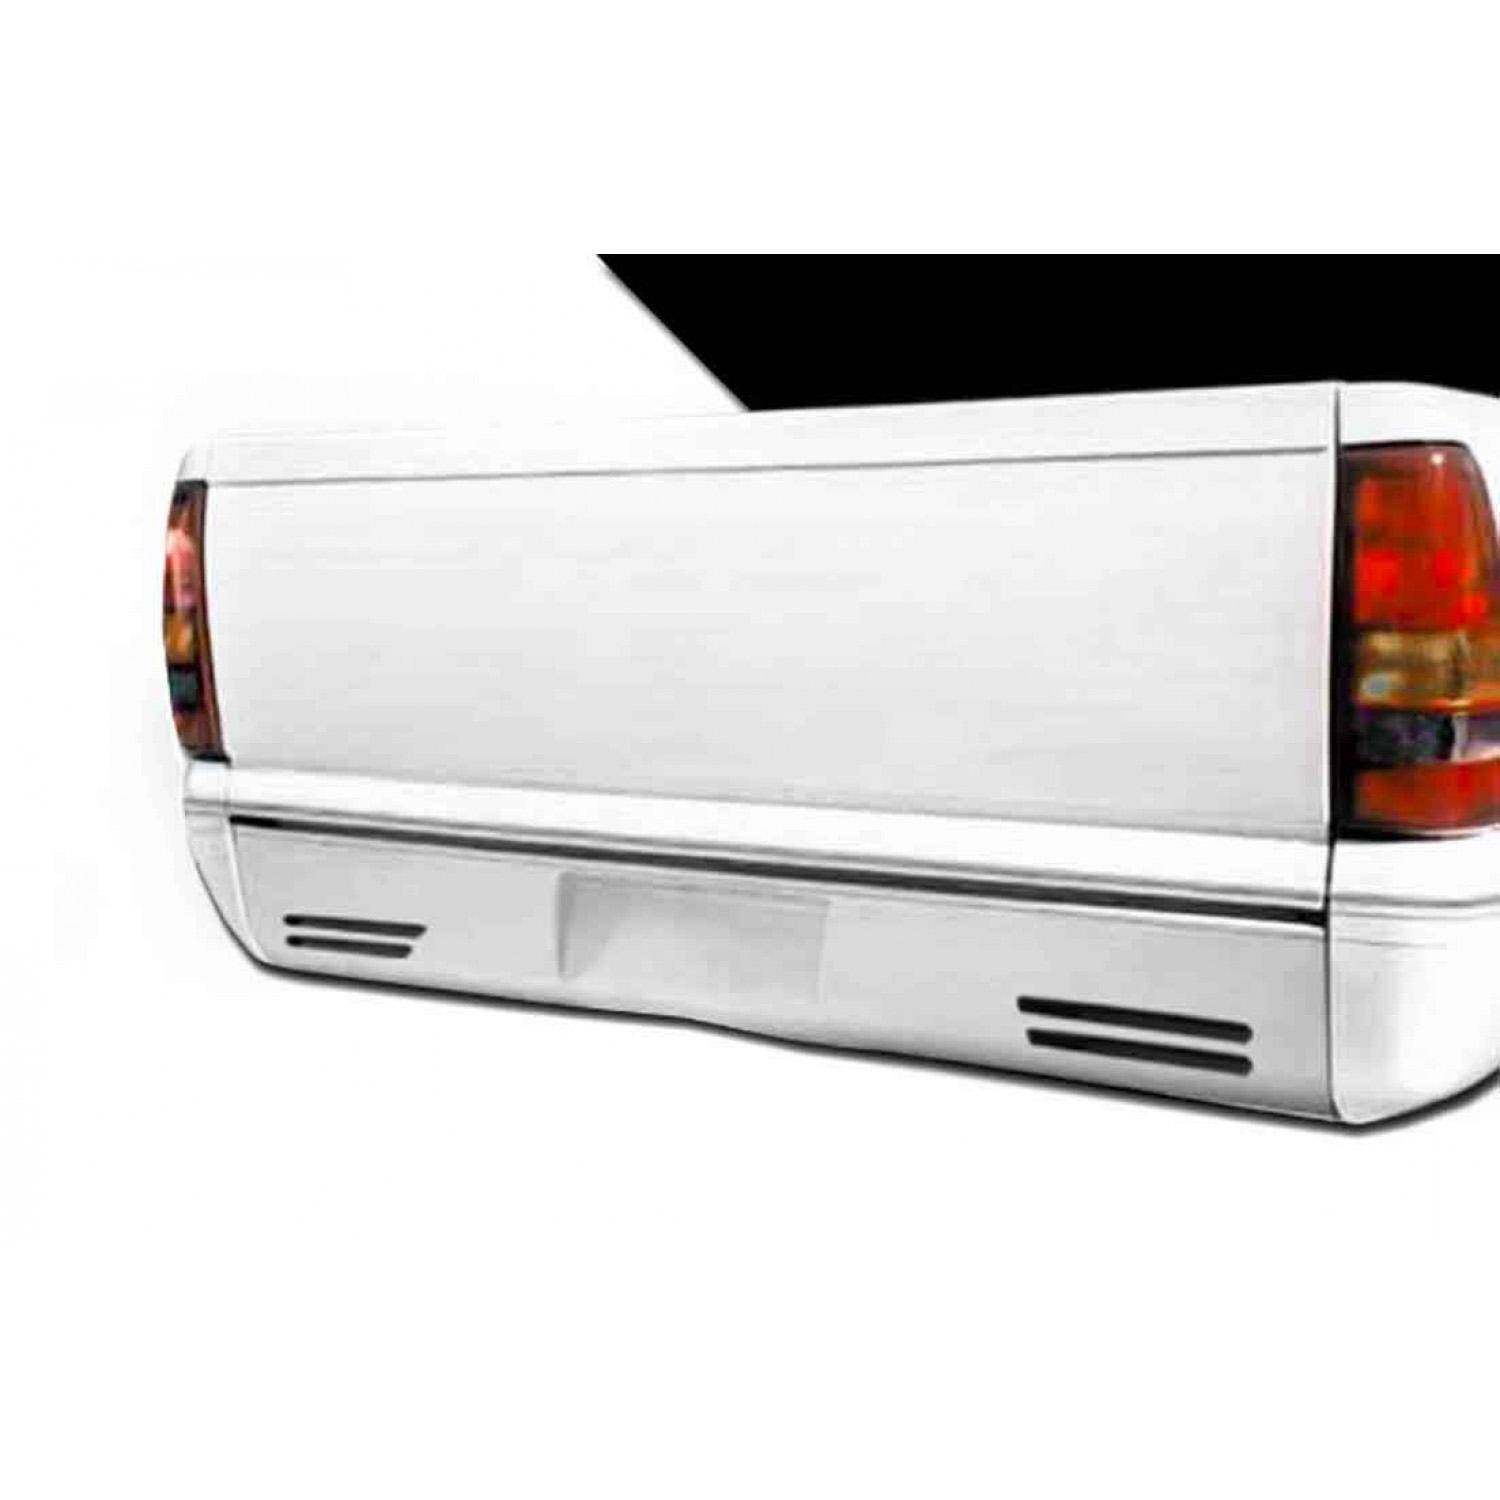 Chevrolet C/K Regular / Standard Cab 1988-1998 C5 Look Style 1 Piece Polyurethane Roll Pan